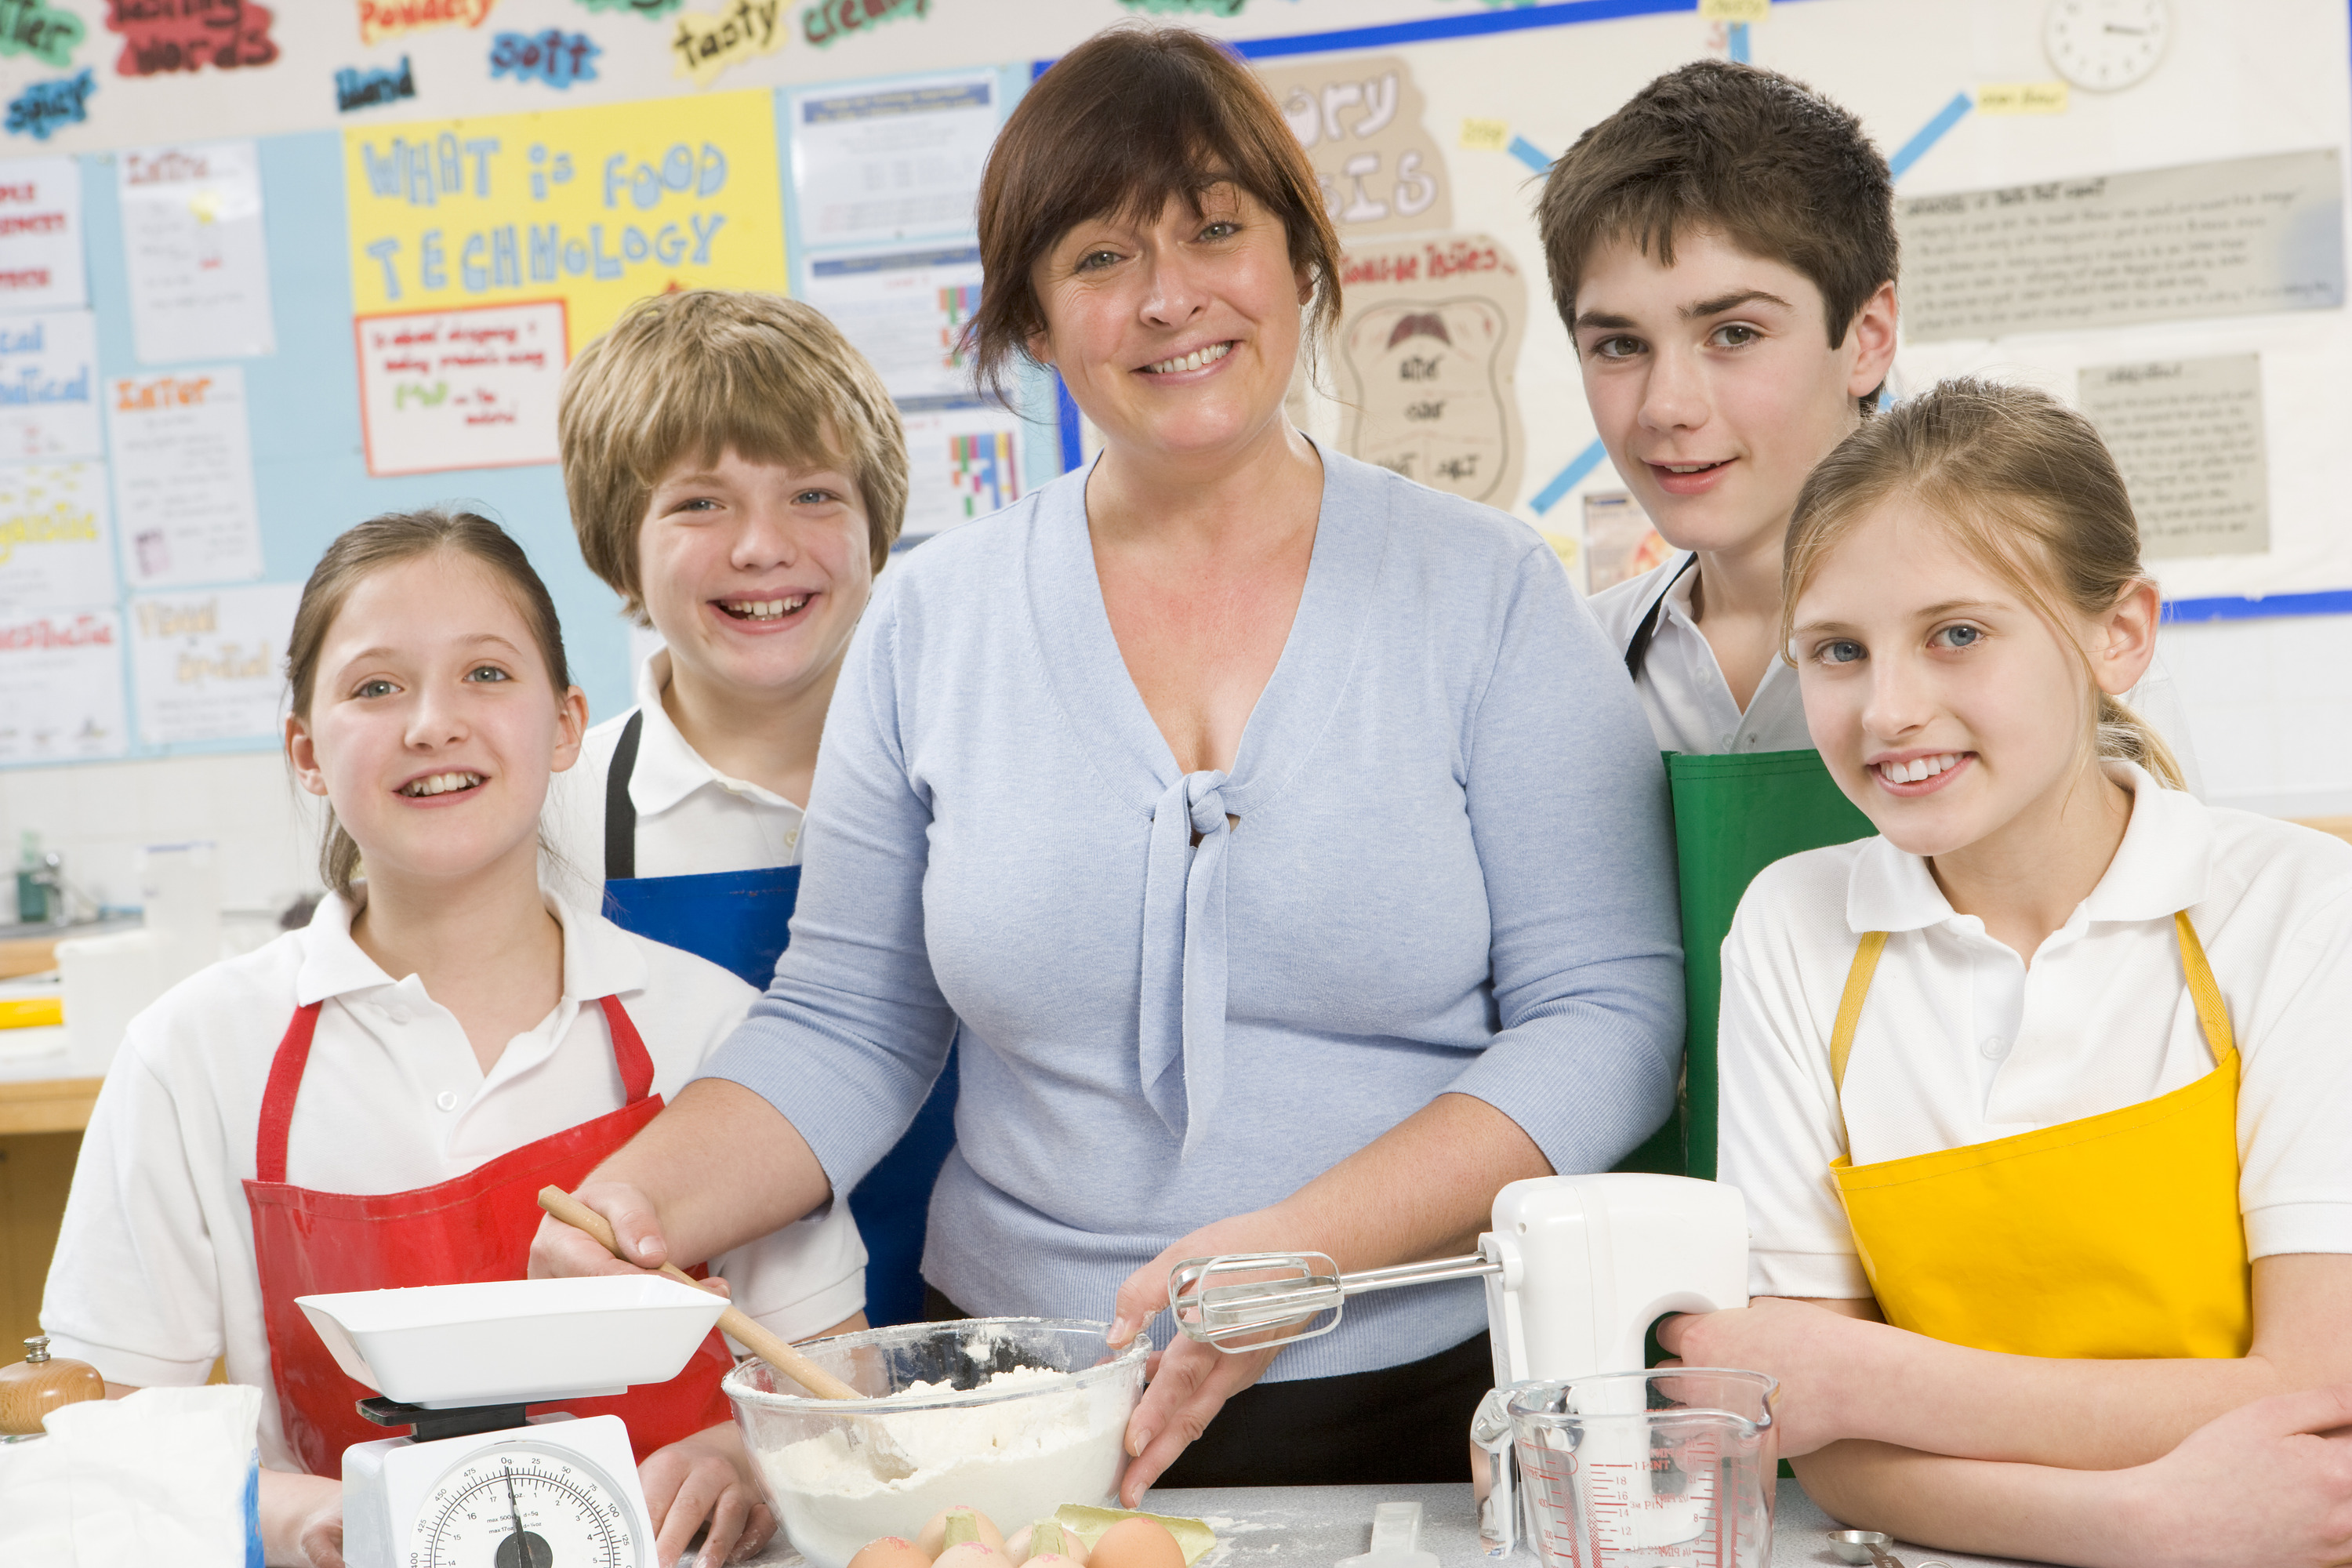 Classroom Cooking Ideas ~ How to engage your students in healthy hands on cooking